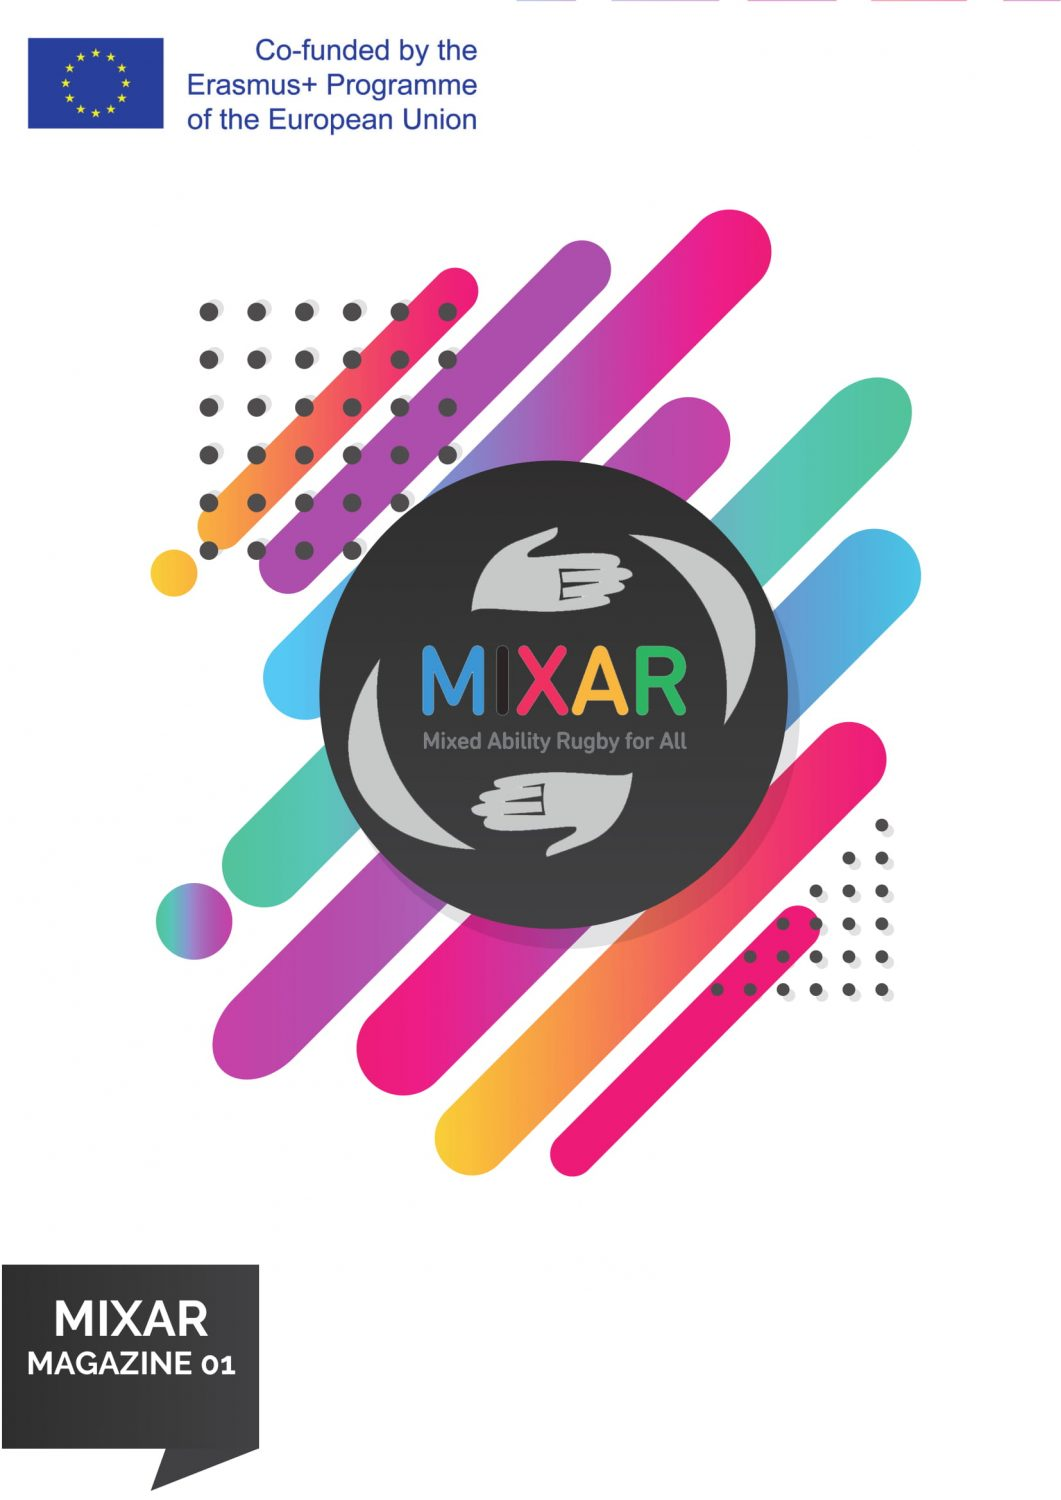 MIXAR Magazine issue 1